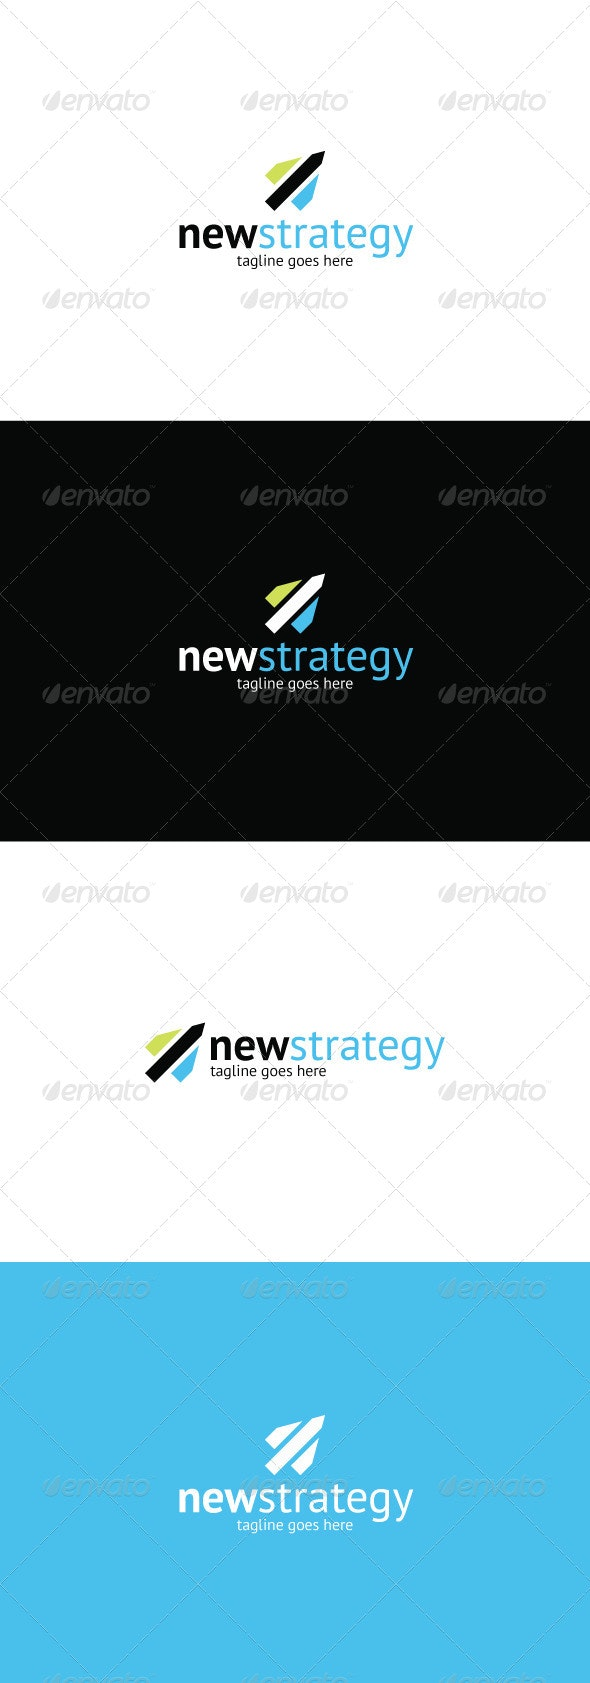 New Strategy Logo - Vector Abstract